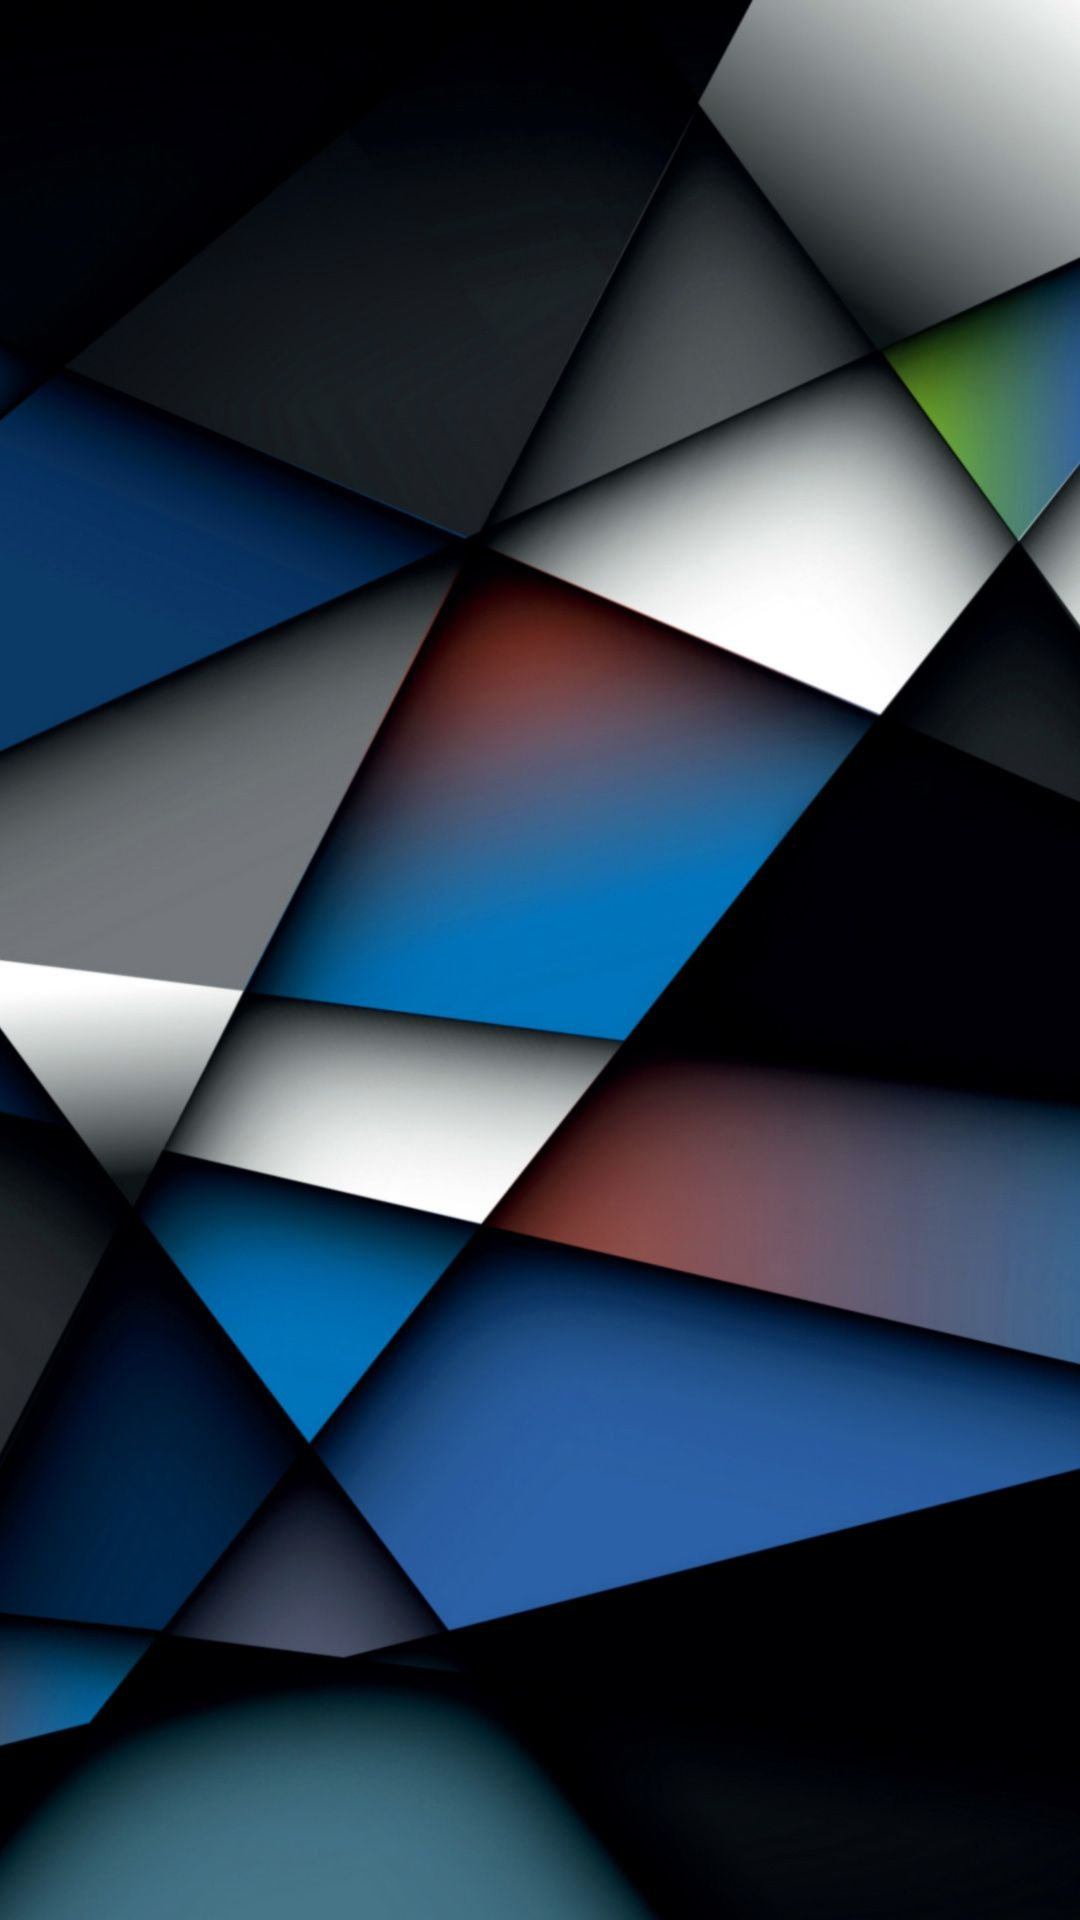 Wallpapers For Smartphone 1280x720 Vertical Abstraction